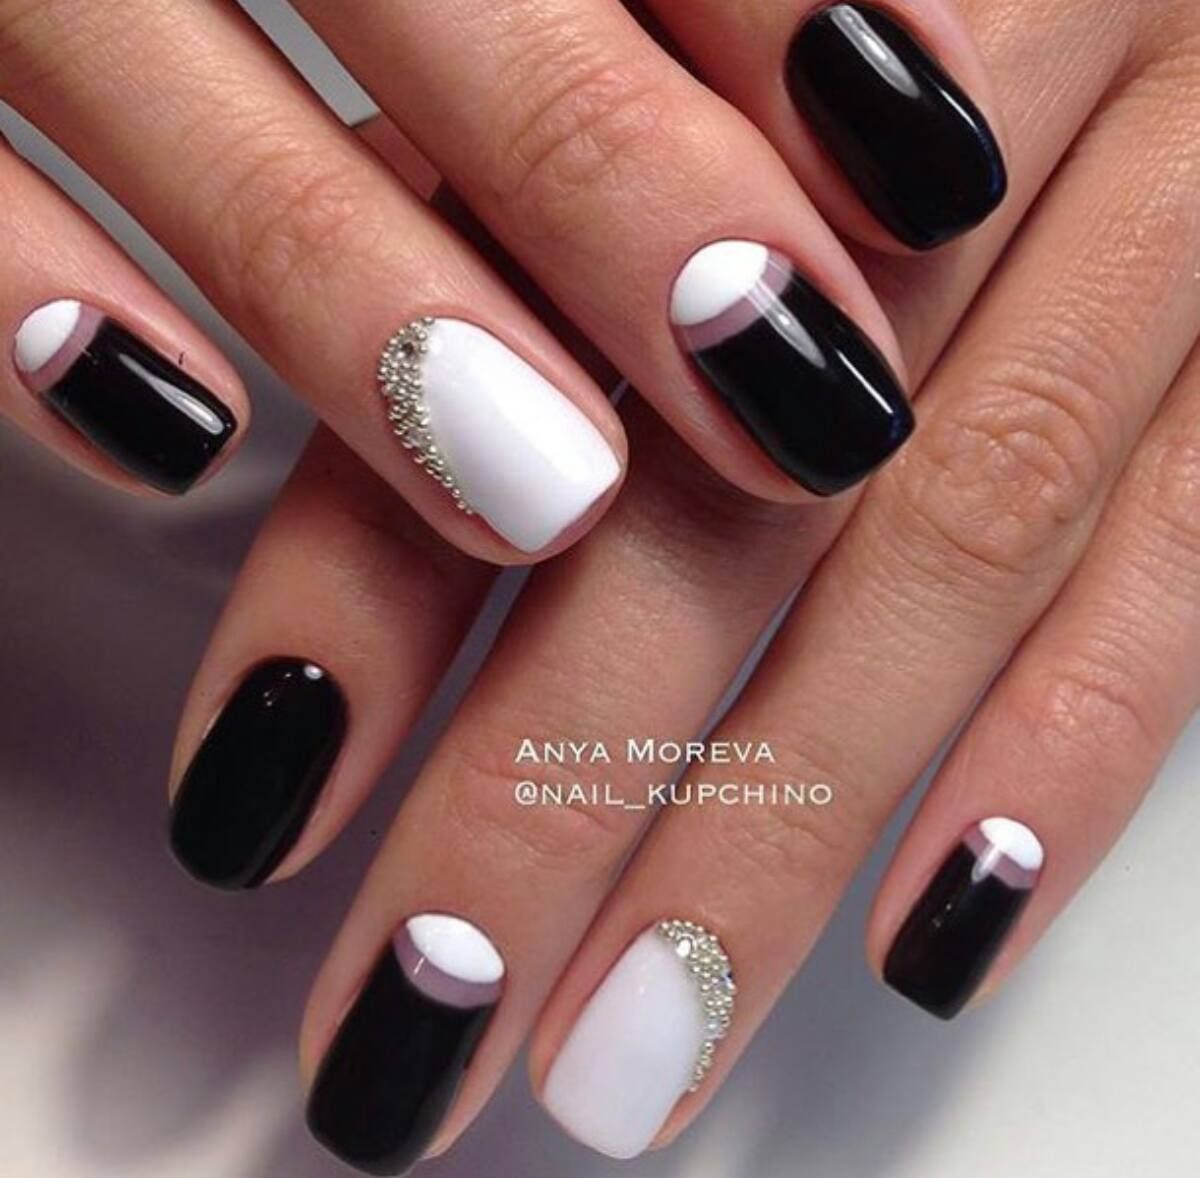 Pin by URSZULA NAILS on ! * * * NAIL : DESIGN\'S | Pinterest ...